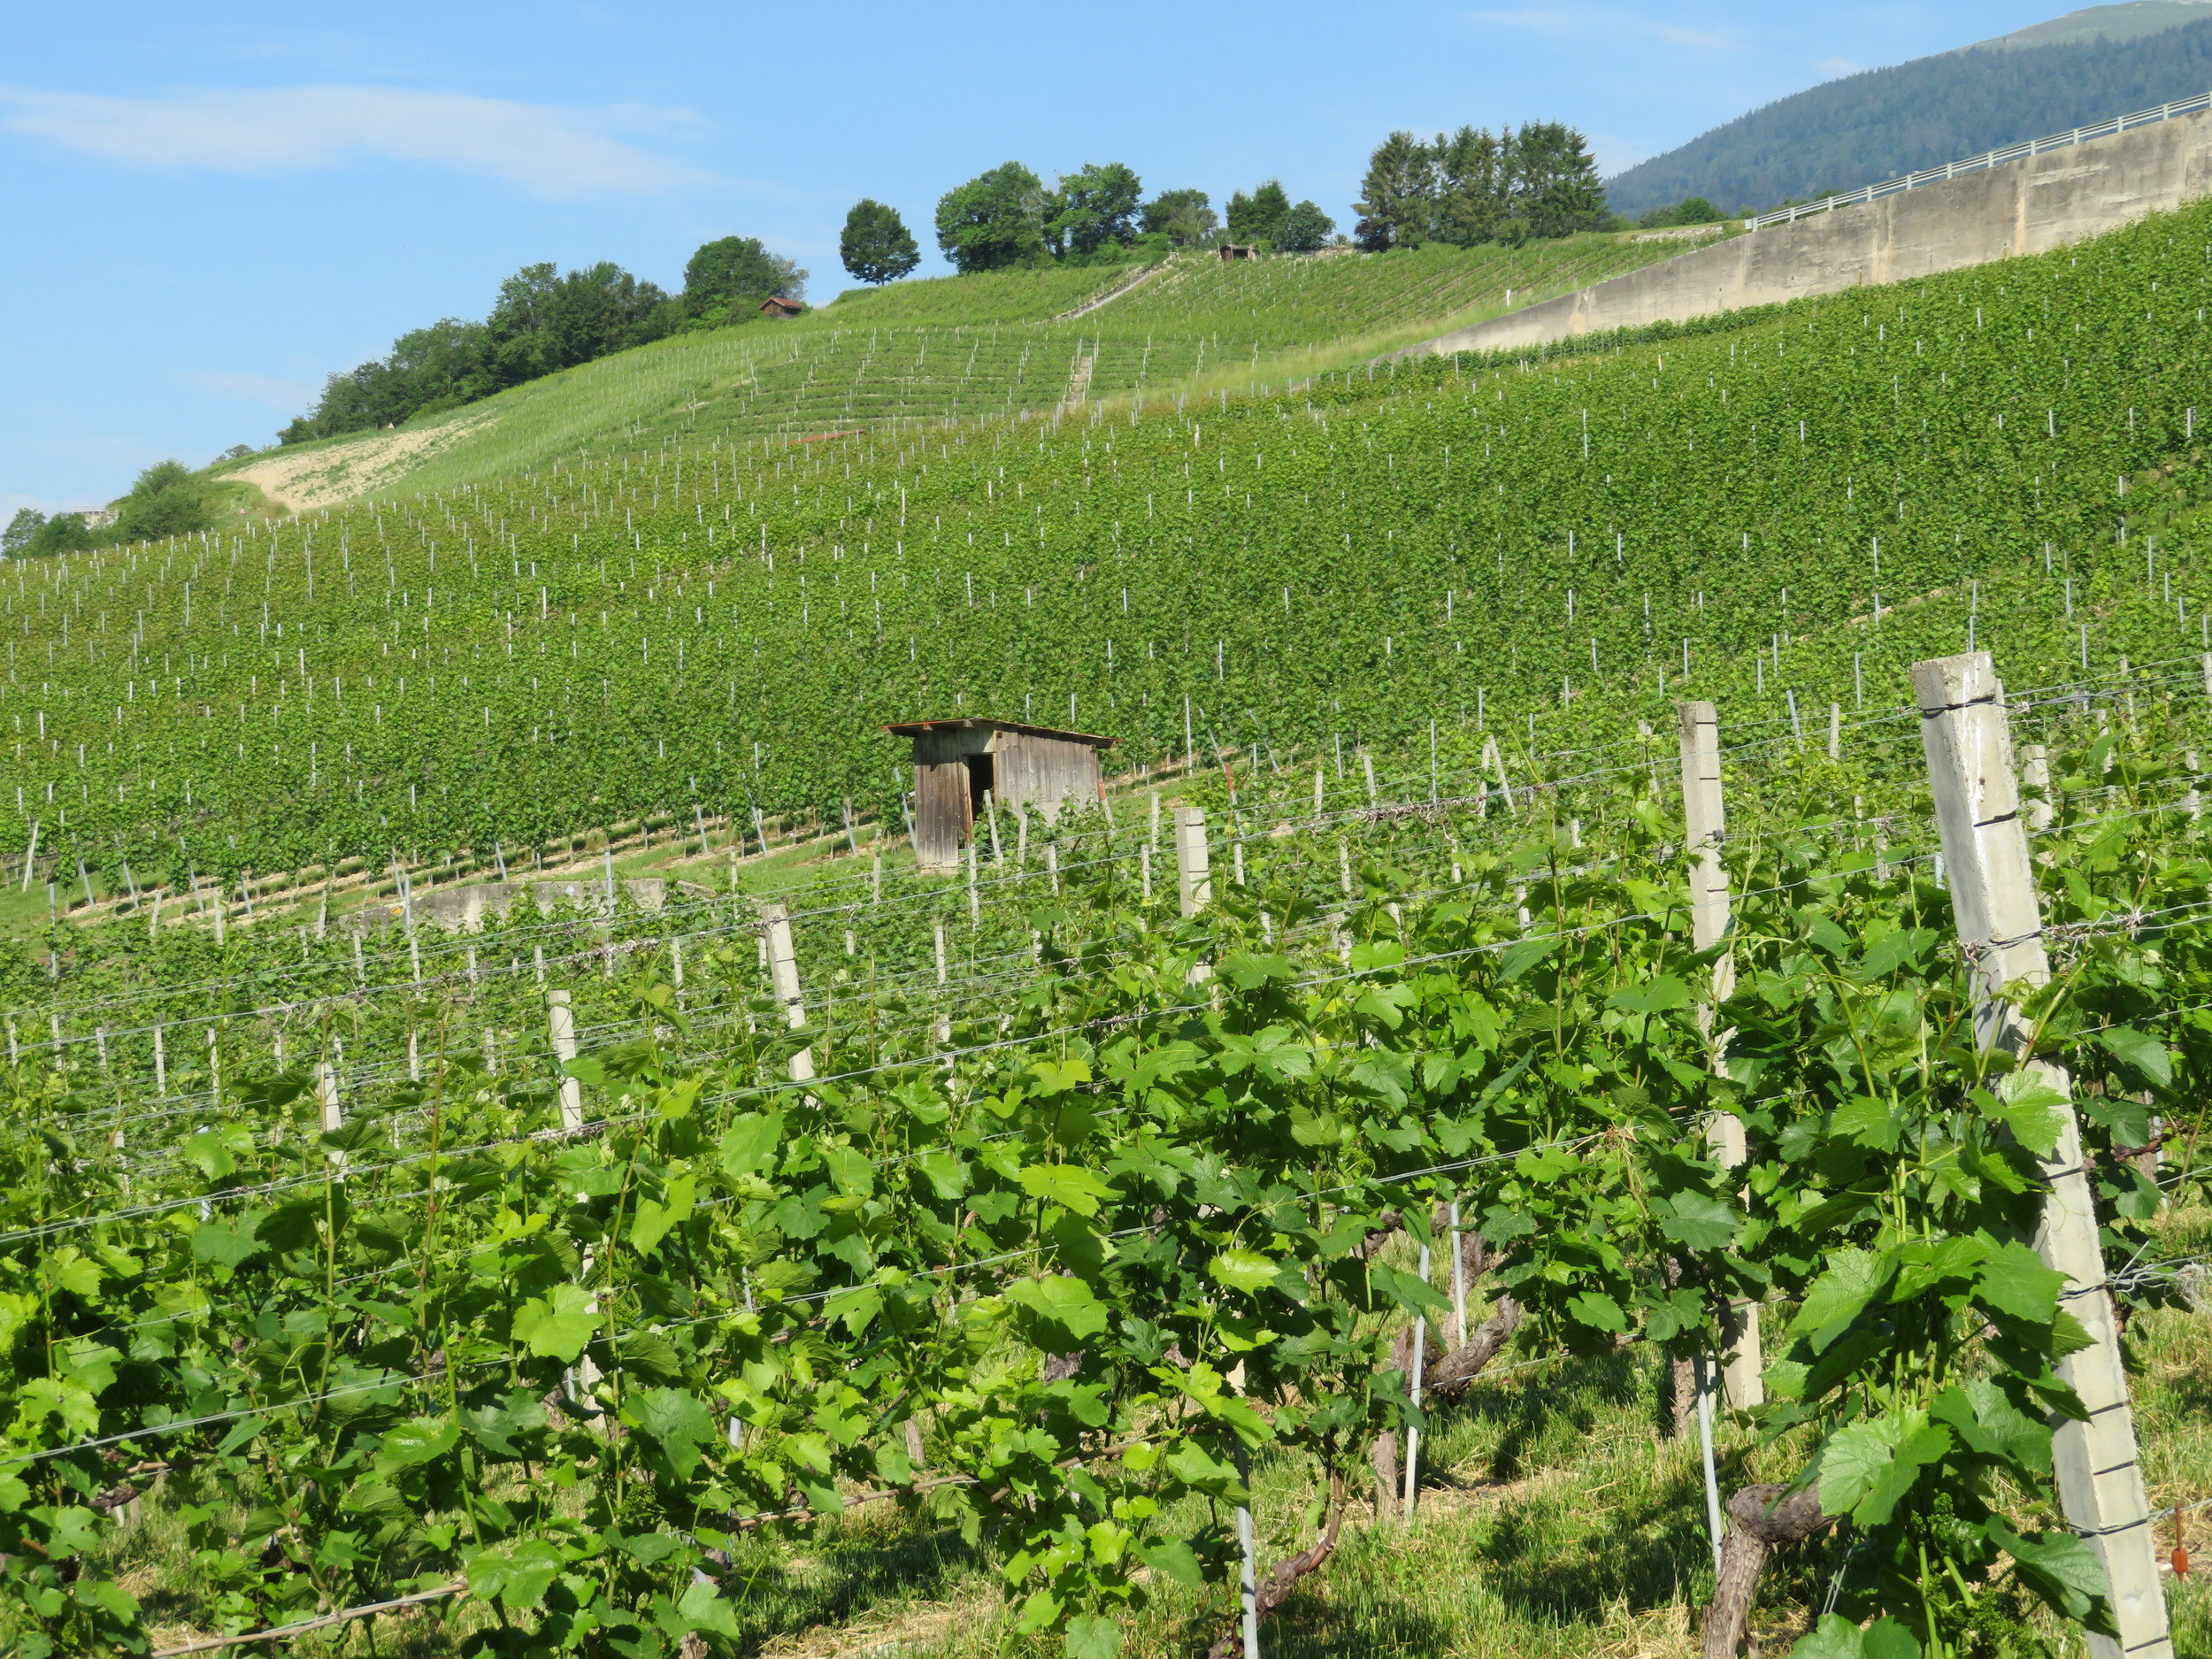 We walked through several vineyards, all neat and tidy on the steep hillsides.